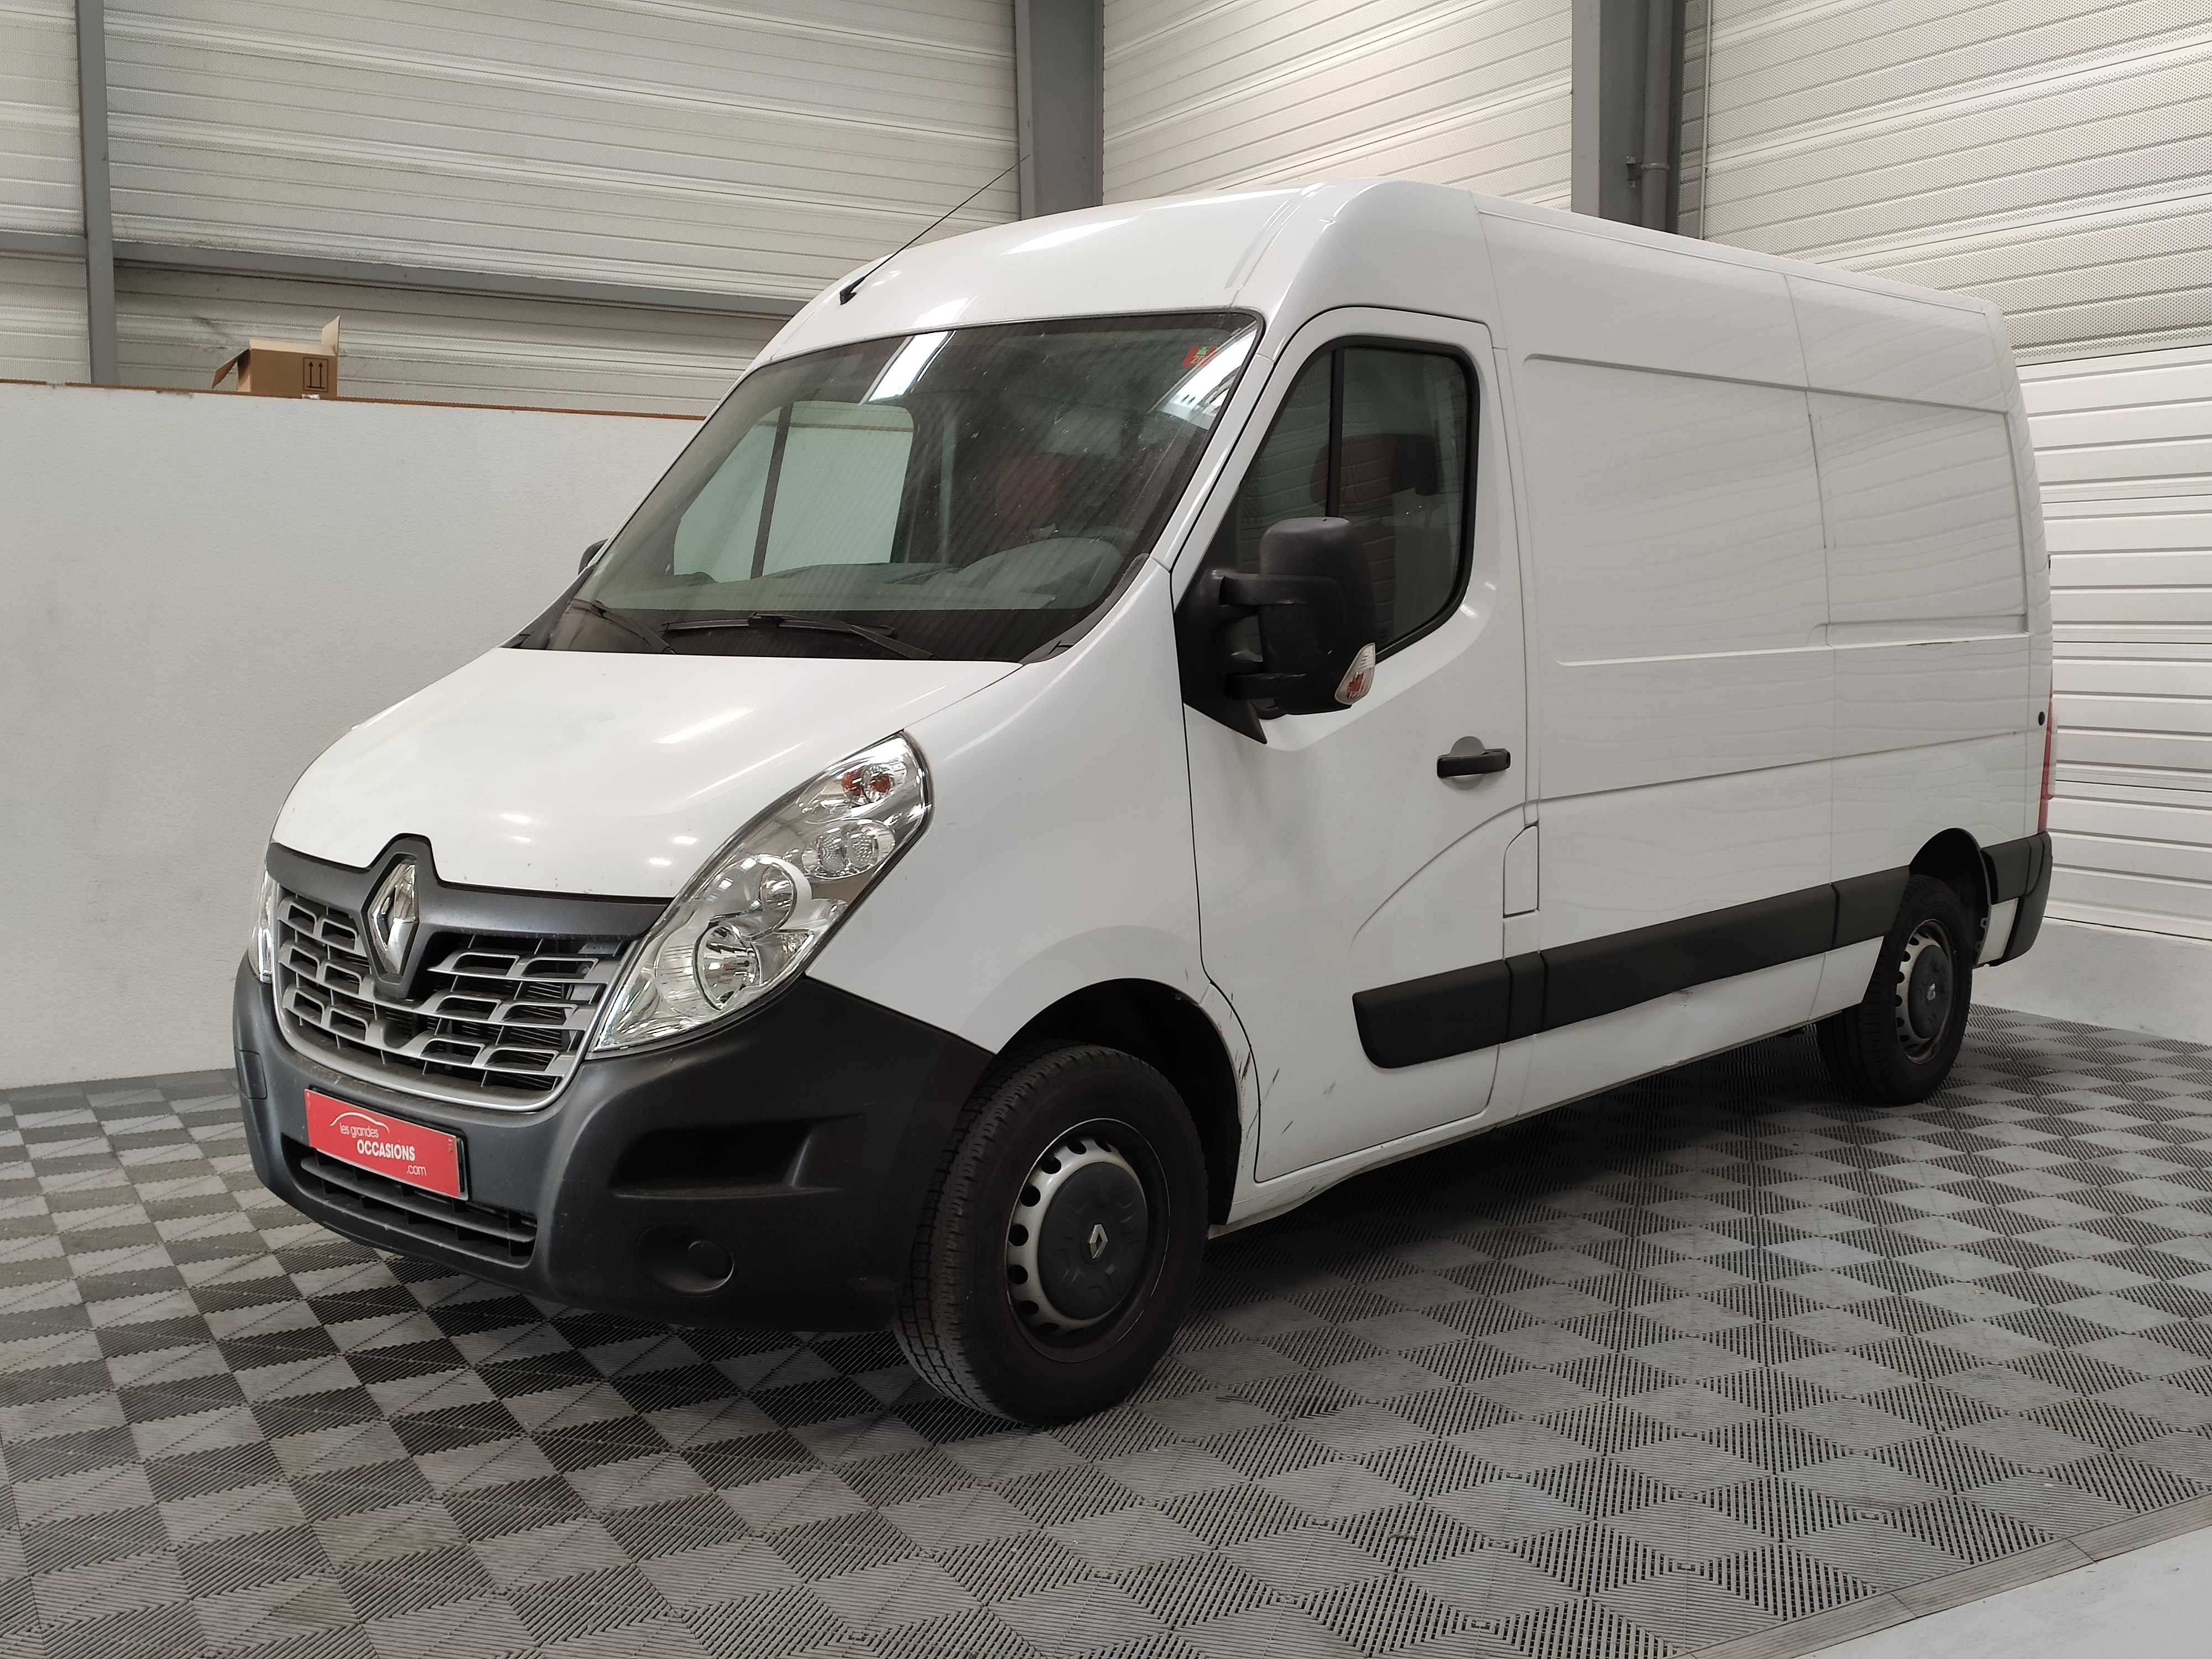 RENAULT MASTER FOURGON L2H2 3.5T 2.3 DCI 125CV GRAND CONFORT d'occasion